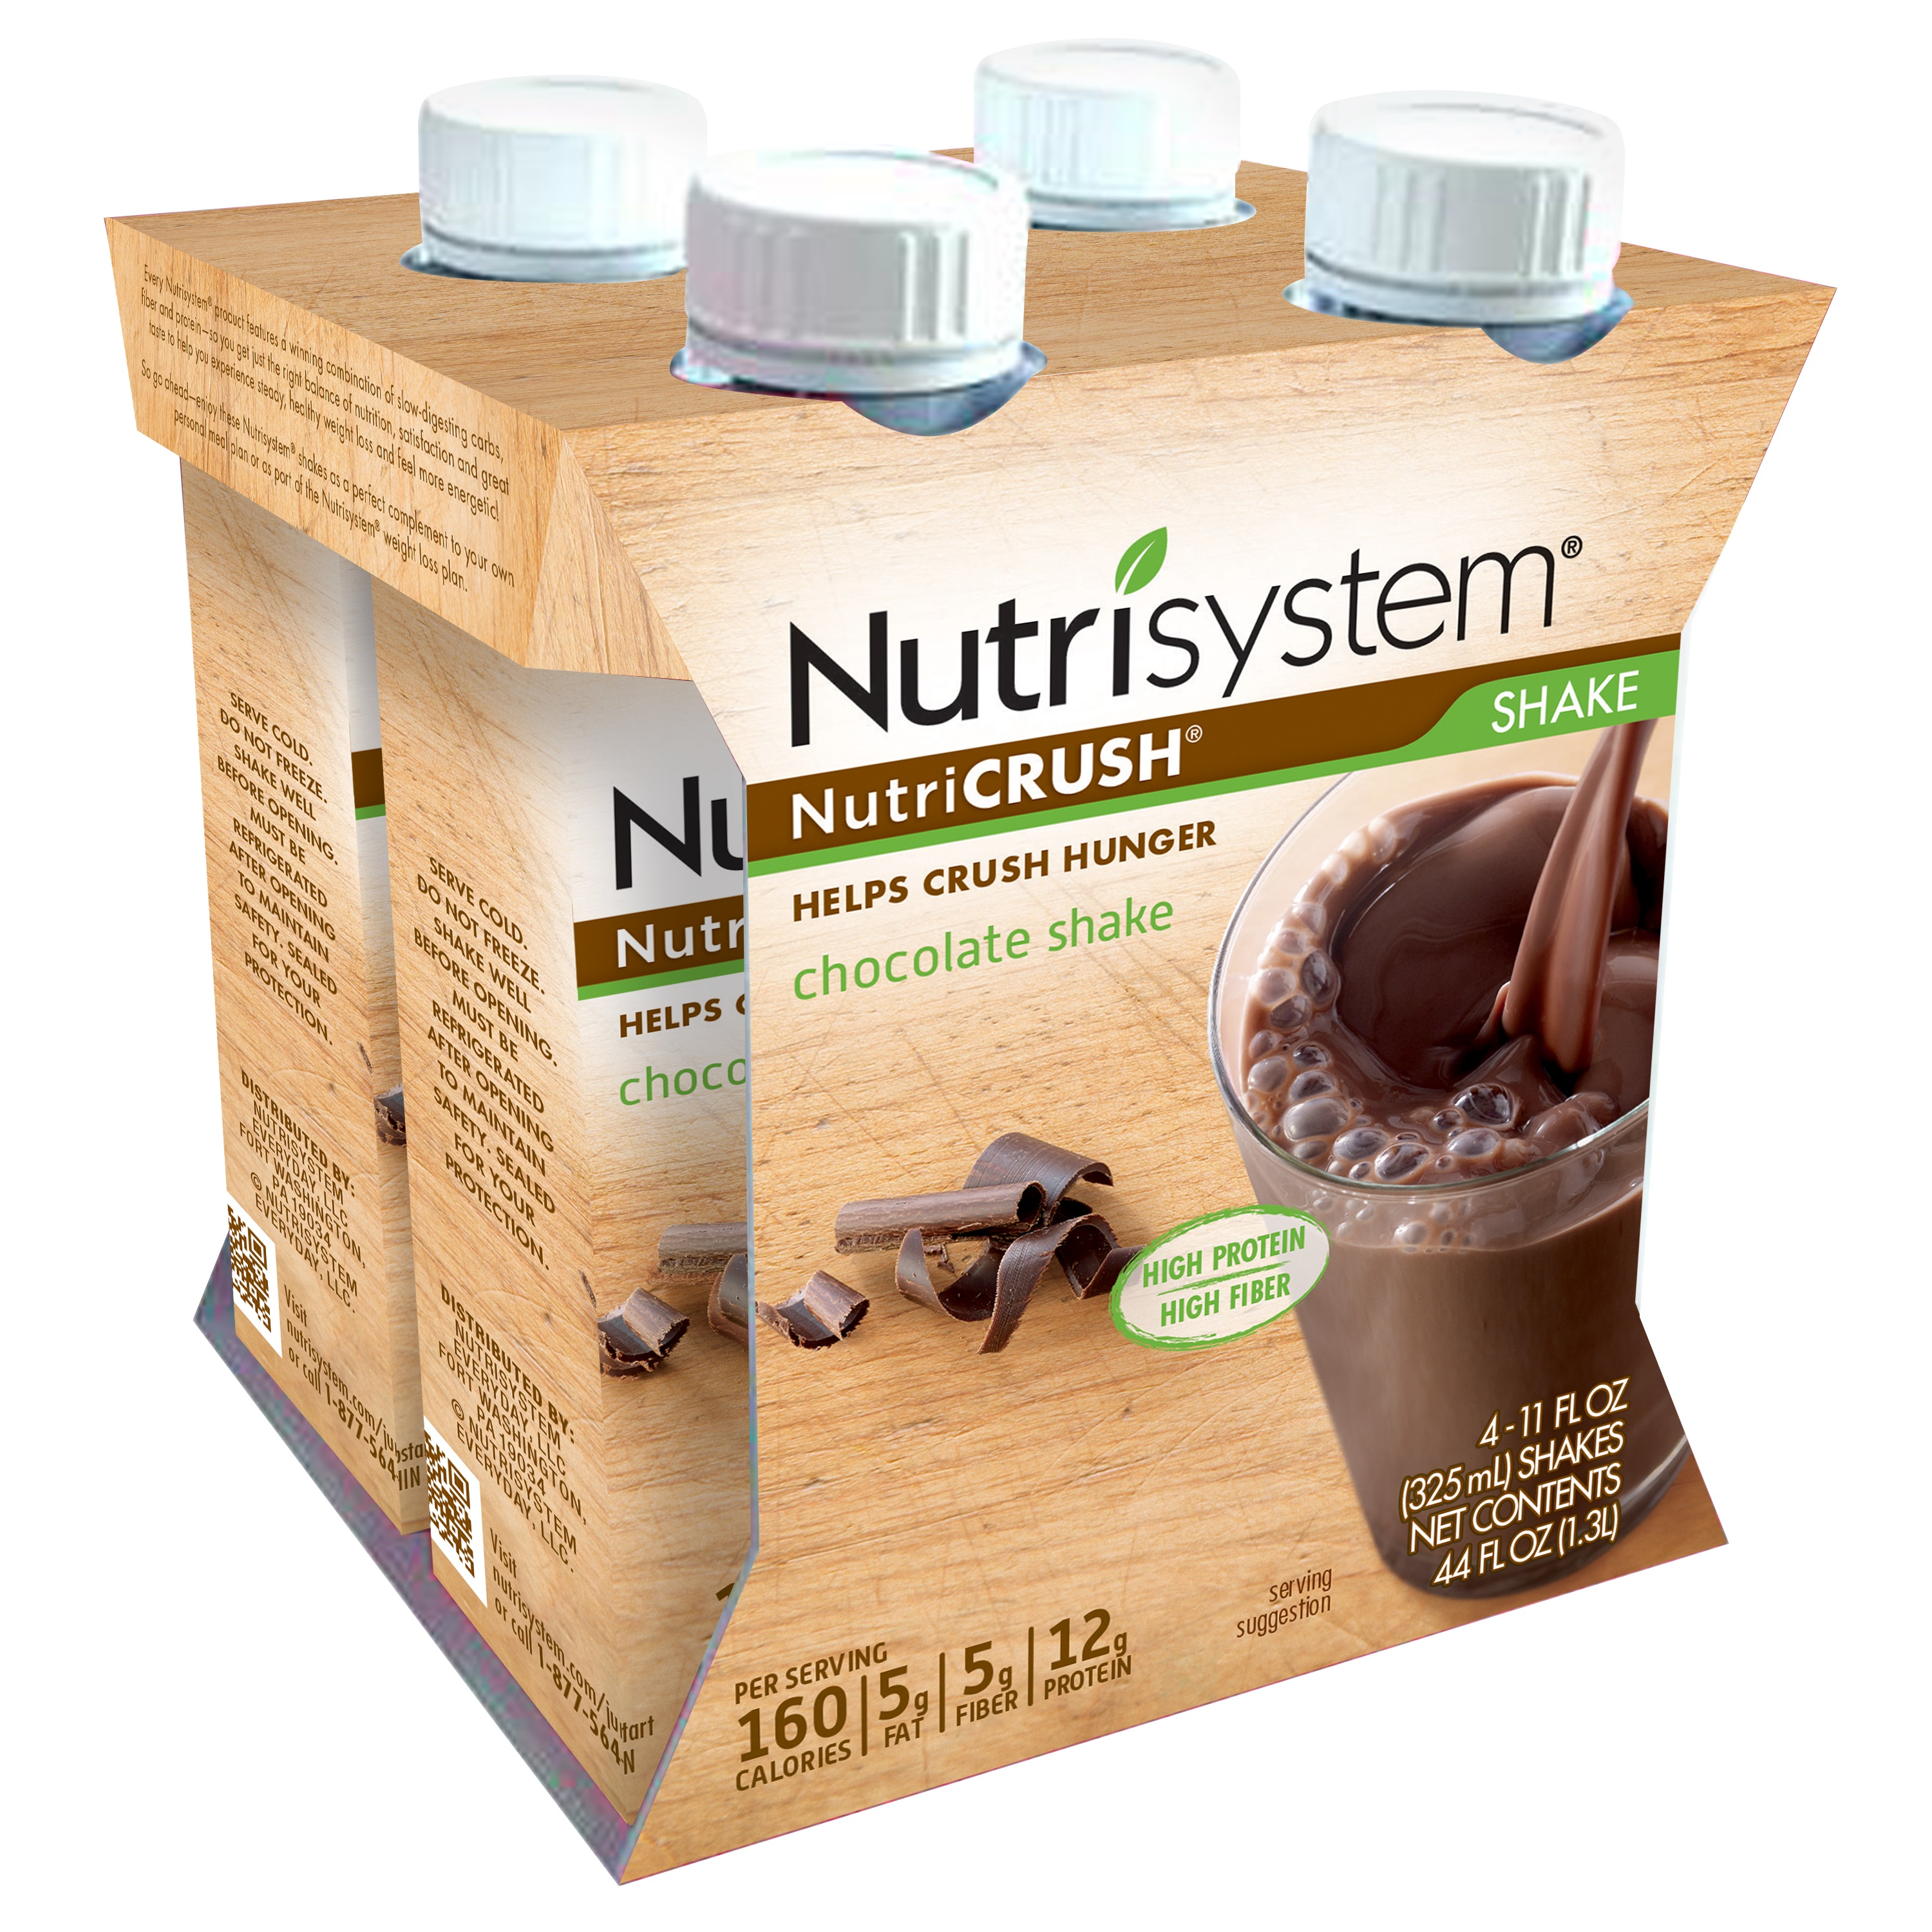 Nutrisystem NutriCrush Chocolate Shake, 11 Fl Oz, 4 Ct